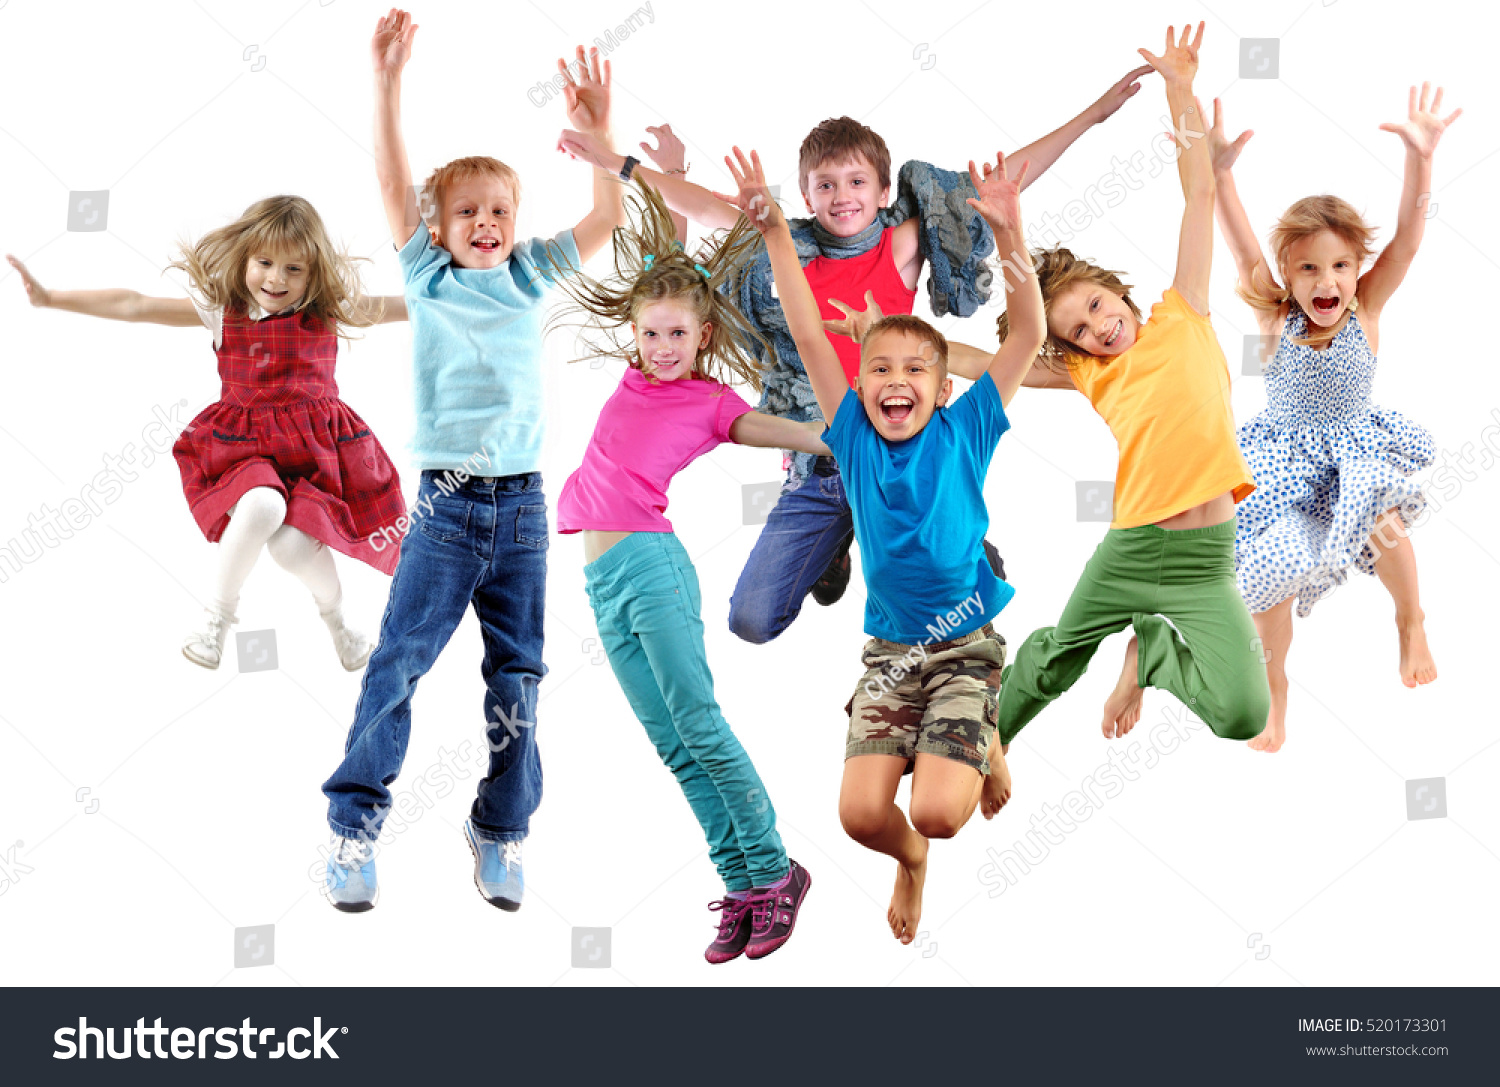 Large group of happy cheerful sportive children jumping, sporting and dancing. Isolated over white background. Childhood, freedom, happiness, active lifestyle concept. #520173301